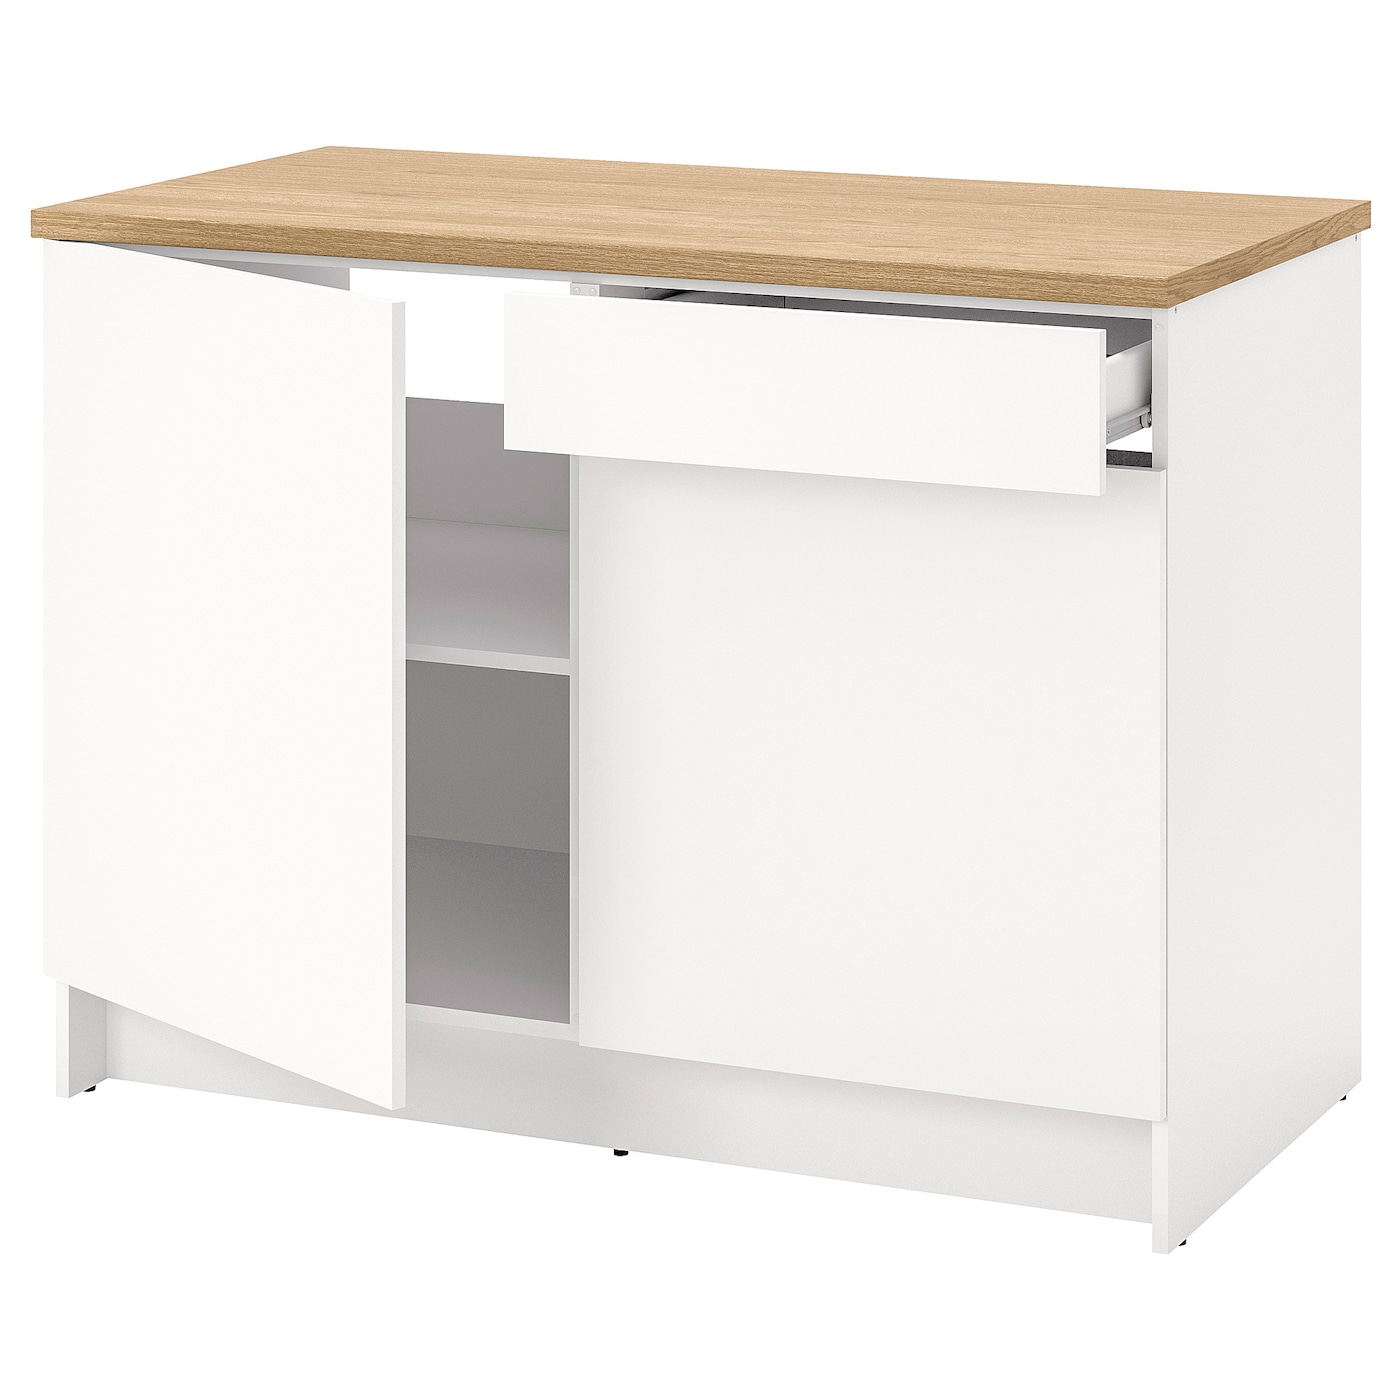 KNOXHULT Base cabinet with doors and drawer - white 15 cm